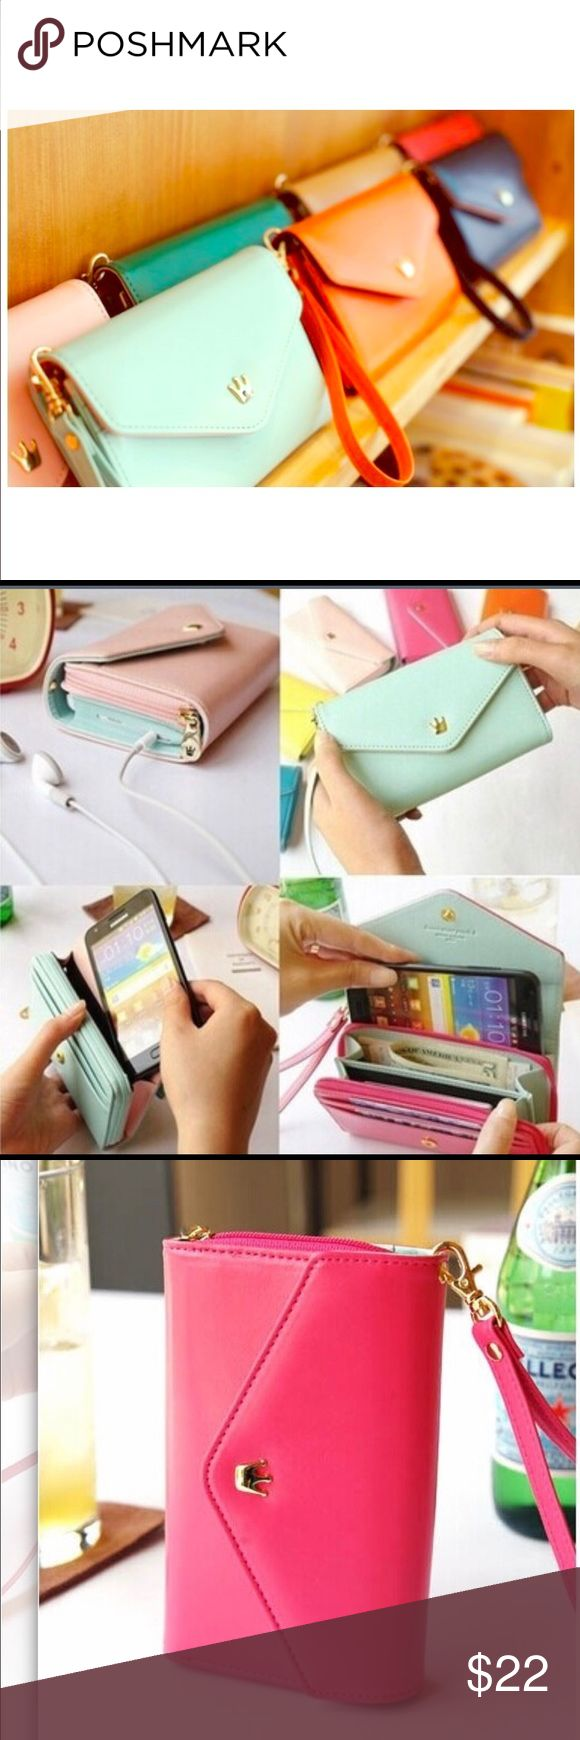 Crown smartphone wallet/wristlest 💋 Crown smartphone pouch wallet that also has attachable strap to convert to wrislet you can store your smartphone,cards, money, etc. fits Samsung galaxy s3 s4 s5 for iPhone 5 5s 5g and iPhone 6 and but not necessarily have to store phone to reap the benefits of this cutie💋 colors are Hot Pink, Navy Blue and Mint Blue just specify color when purchasing Bags Wallets